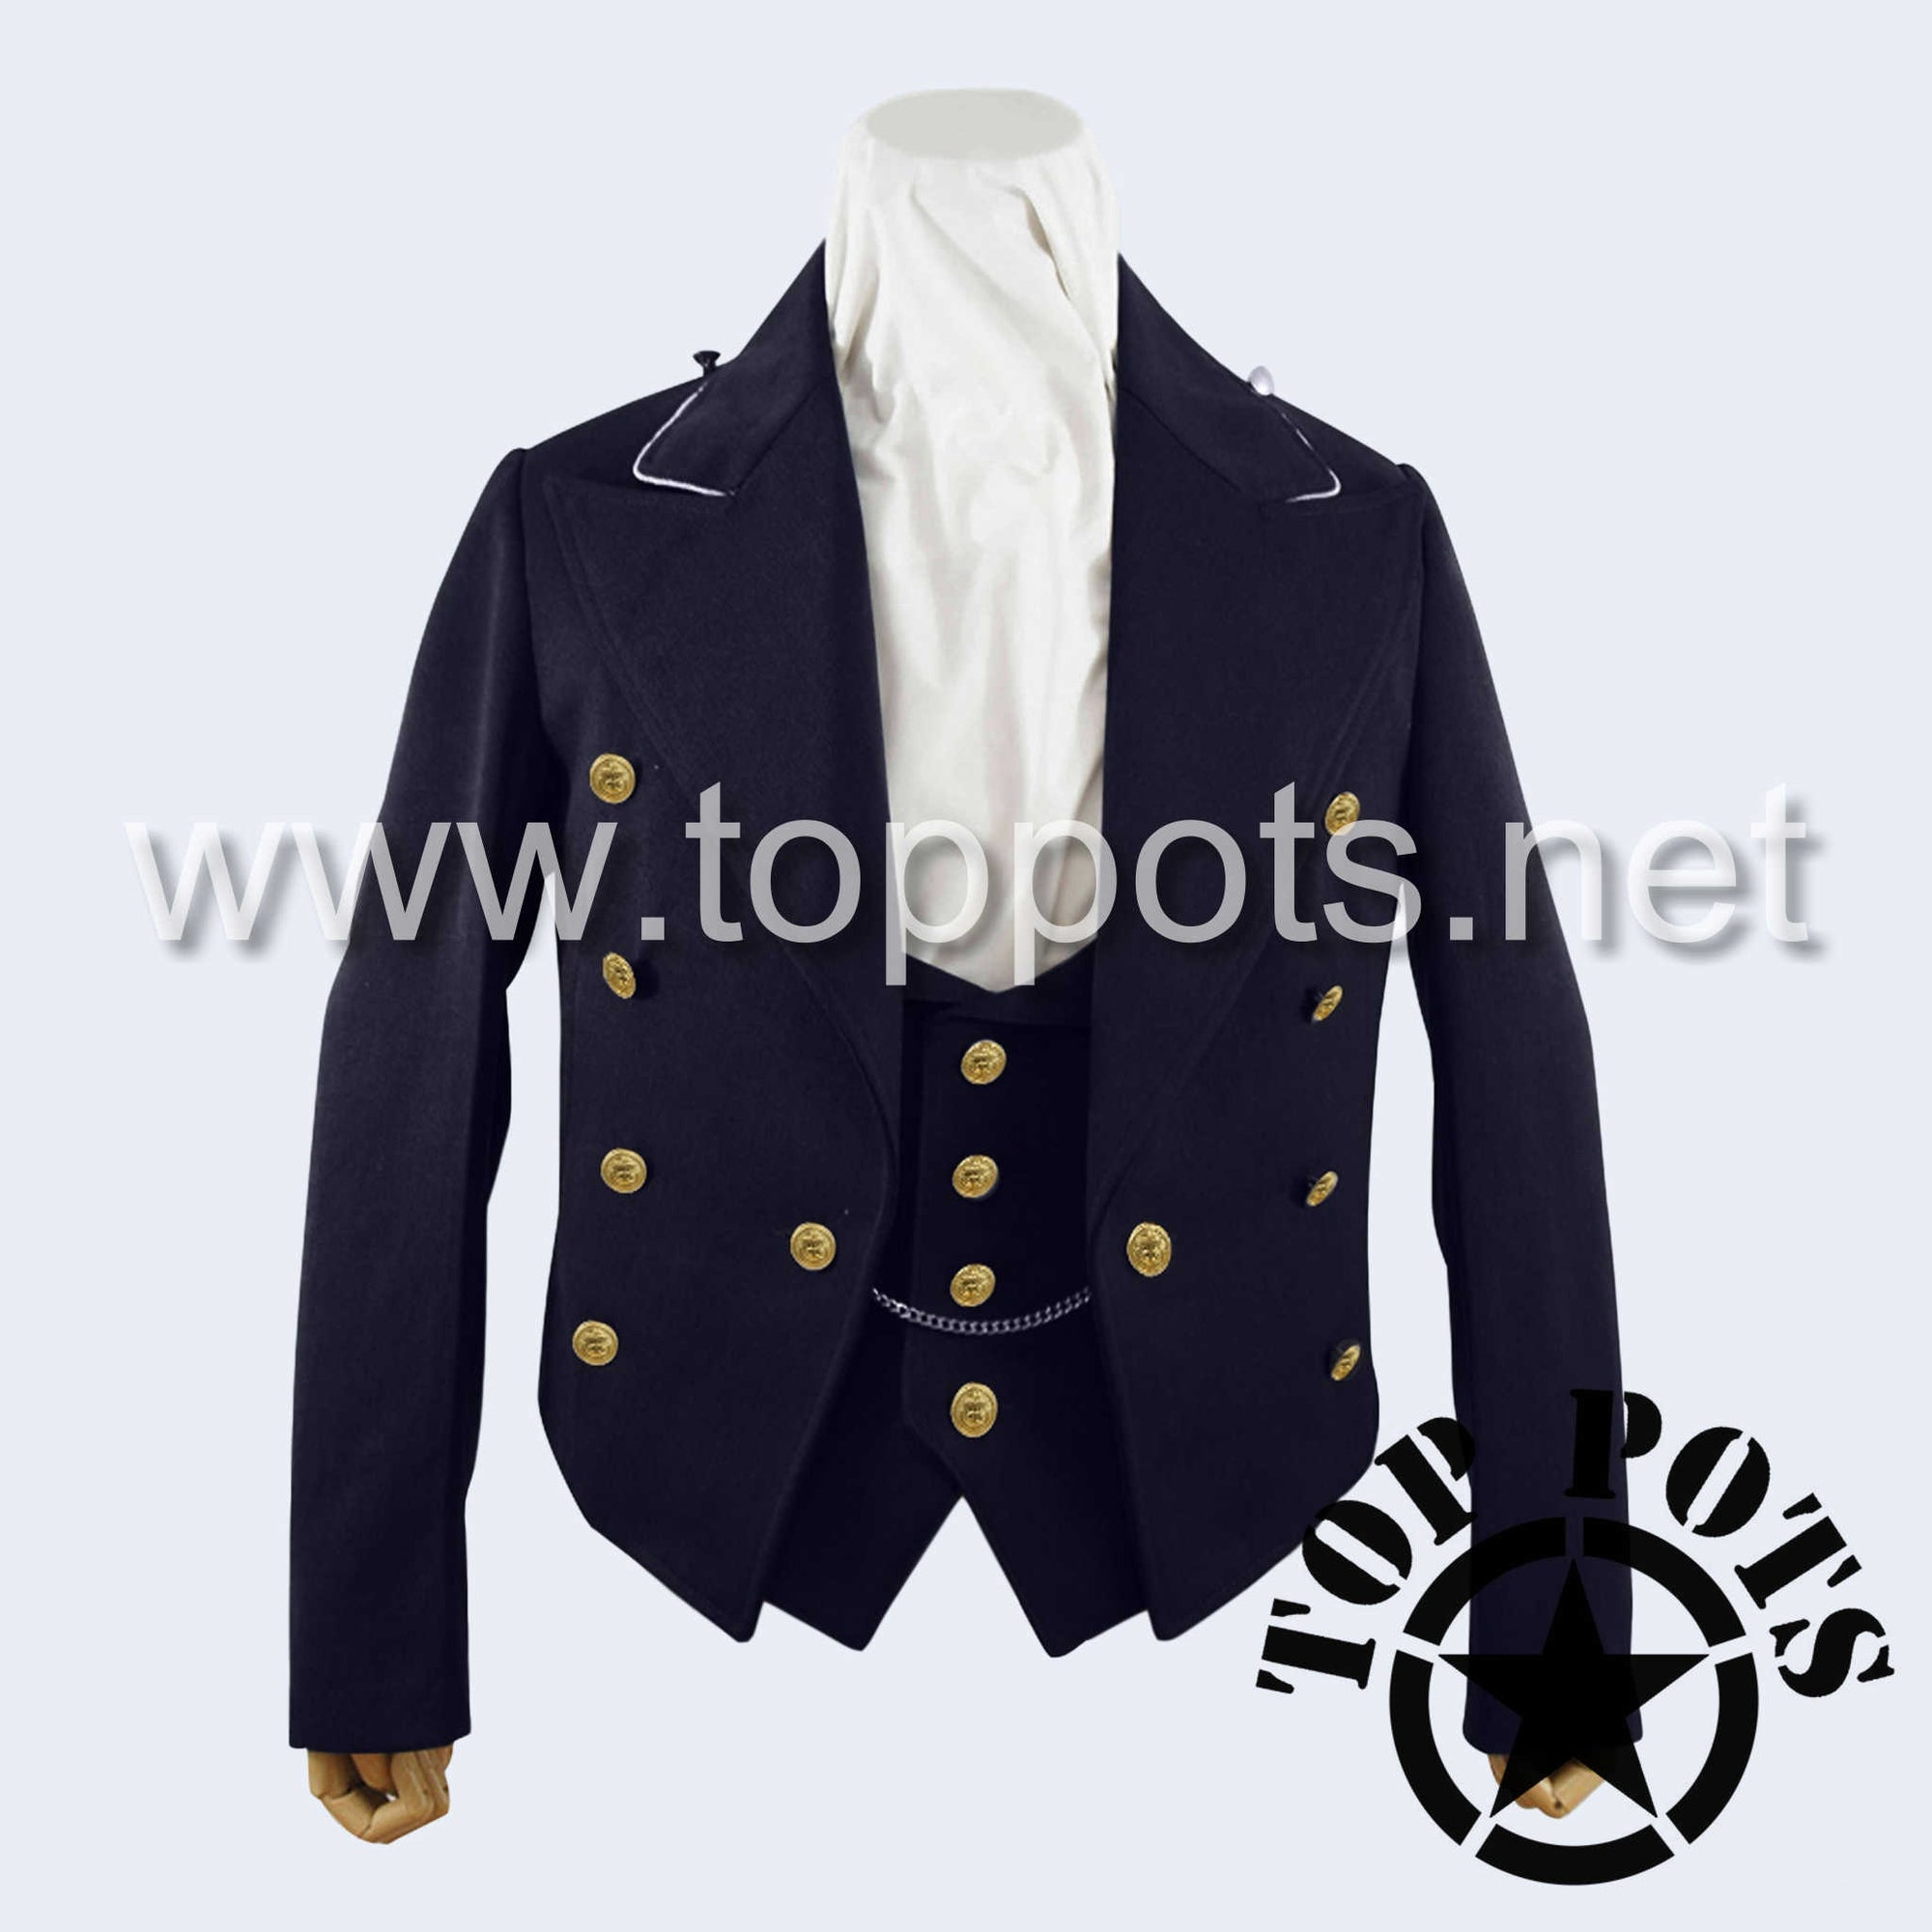 WWII German Navy Kriegsmarine Admiral Uniform Jacket Ceremonial Formal Dress Tuxedo with Vest Navy Blue Gabardine - 8 Button Front Tunic with Piping